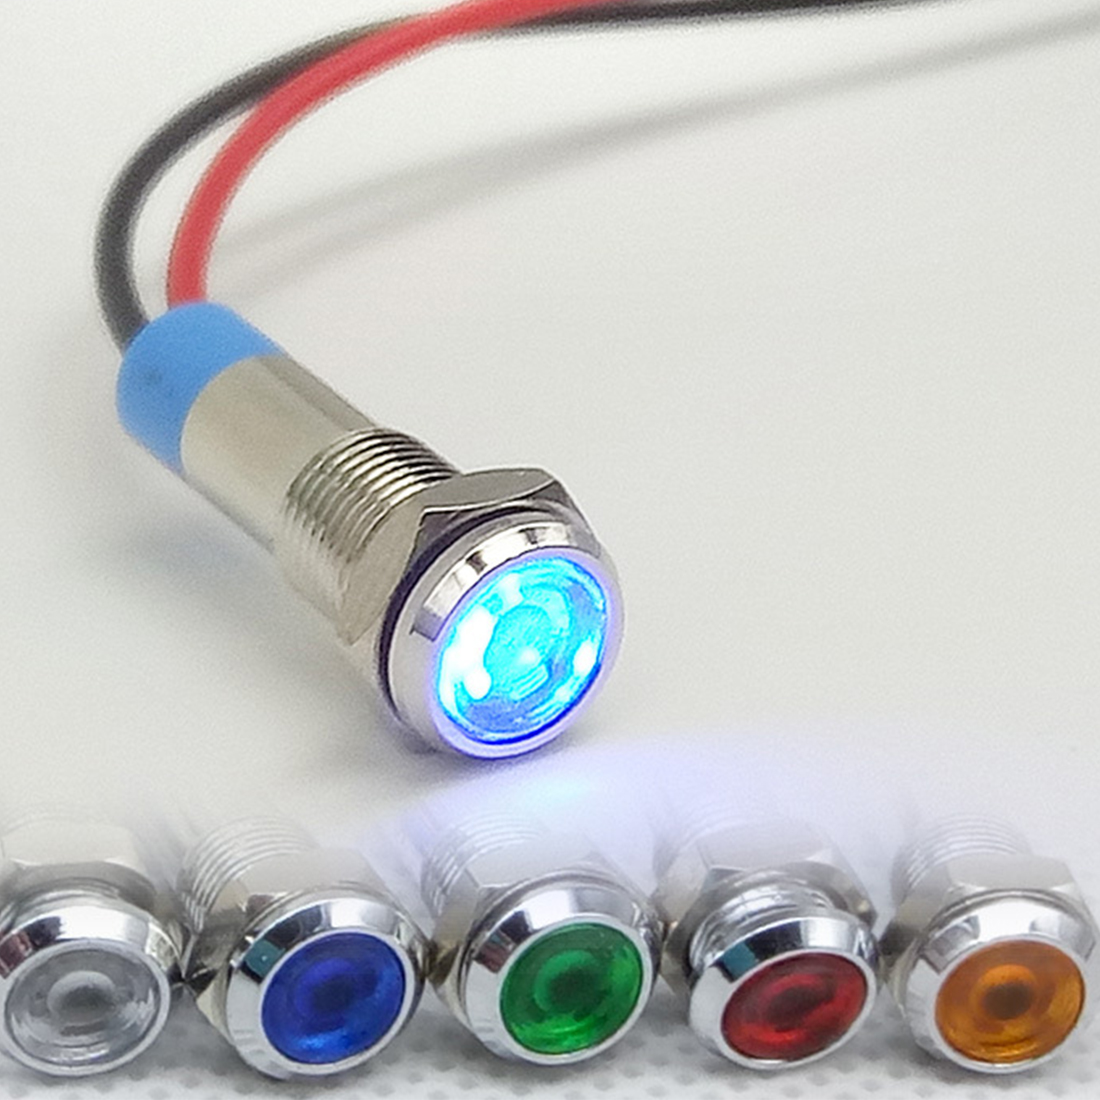 1Pc Waterproof 6mm LED Metal Indicator Light Signal Lamp 6V 12V 24V 220v With Wire Red Yellow Blue Green White